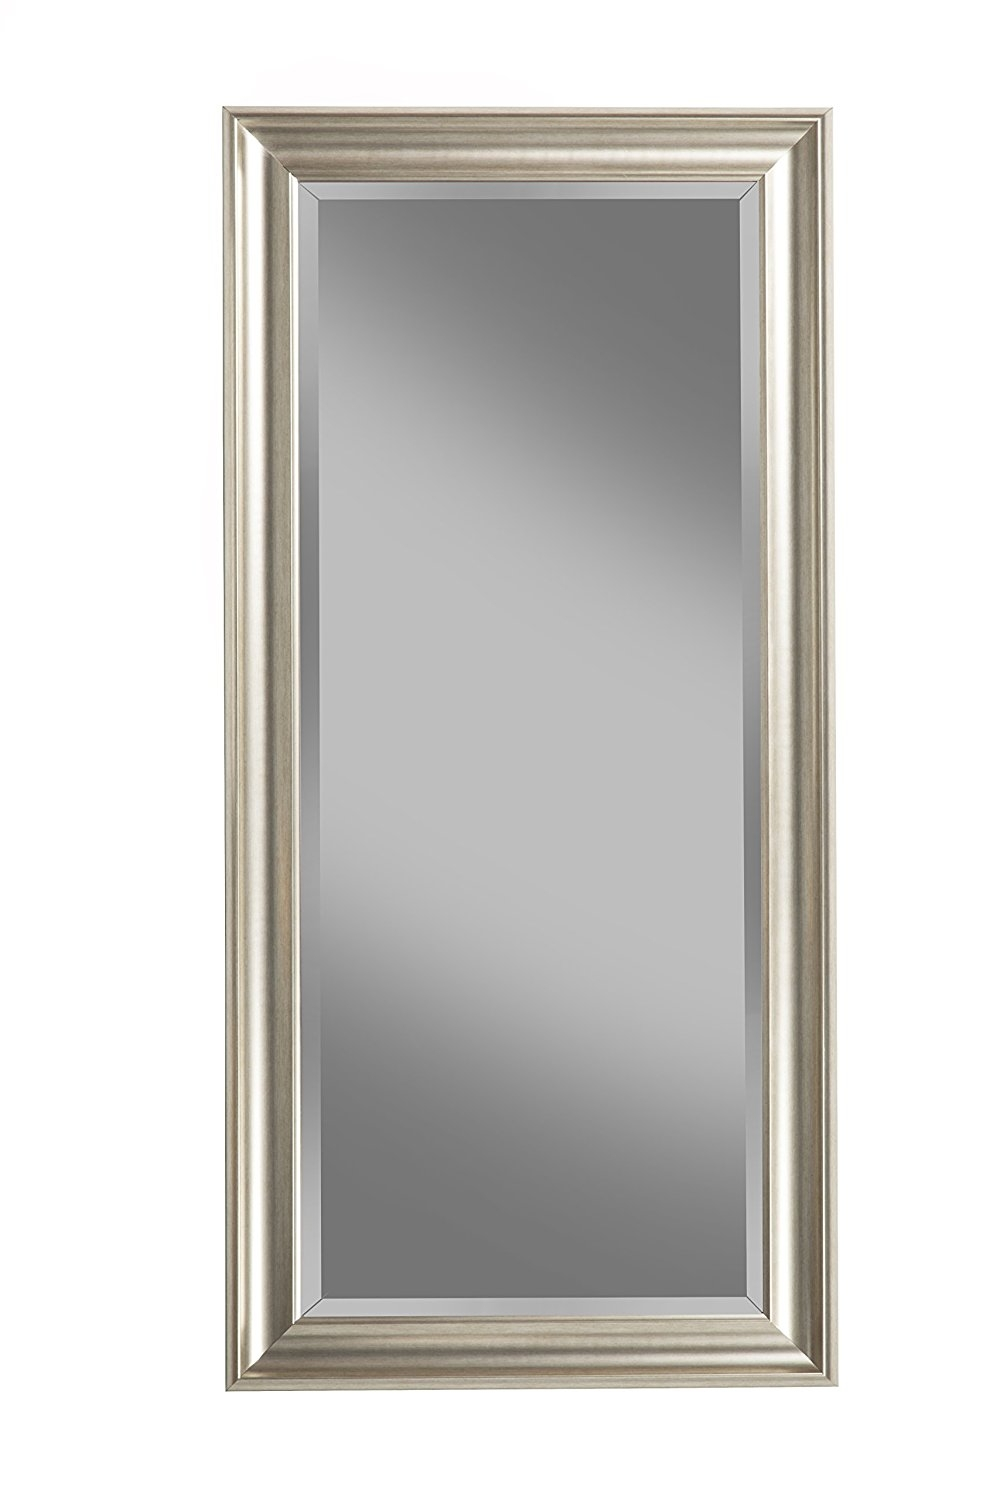 Amazon Sandberg Furniture Champagne Silver Full Length Leaner Pertaining To Full Length Silver Mirror (Image 1 of 15)